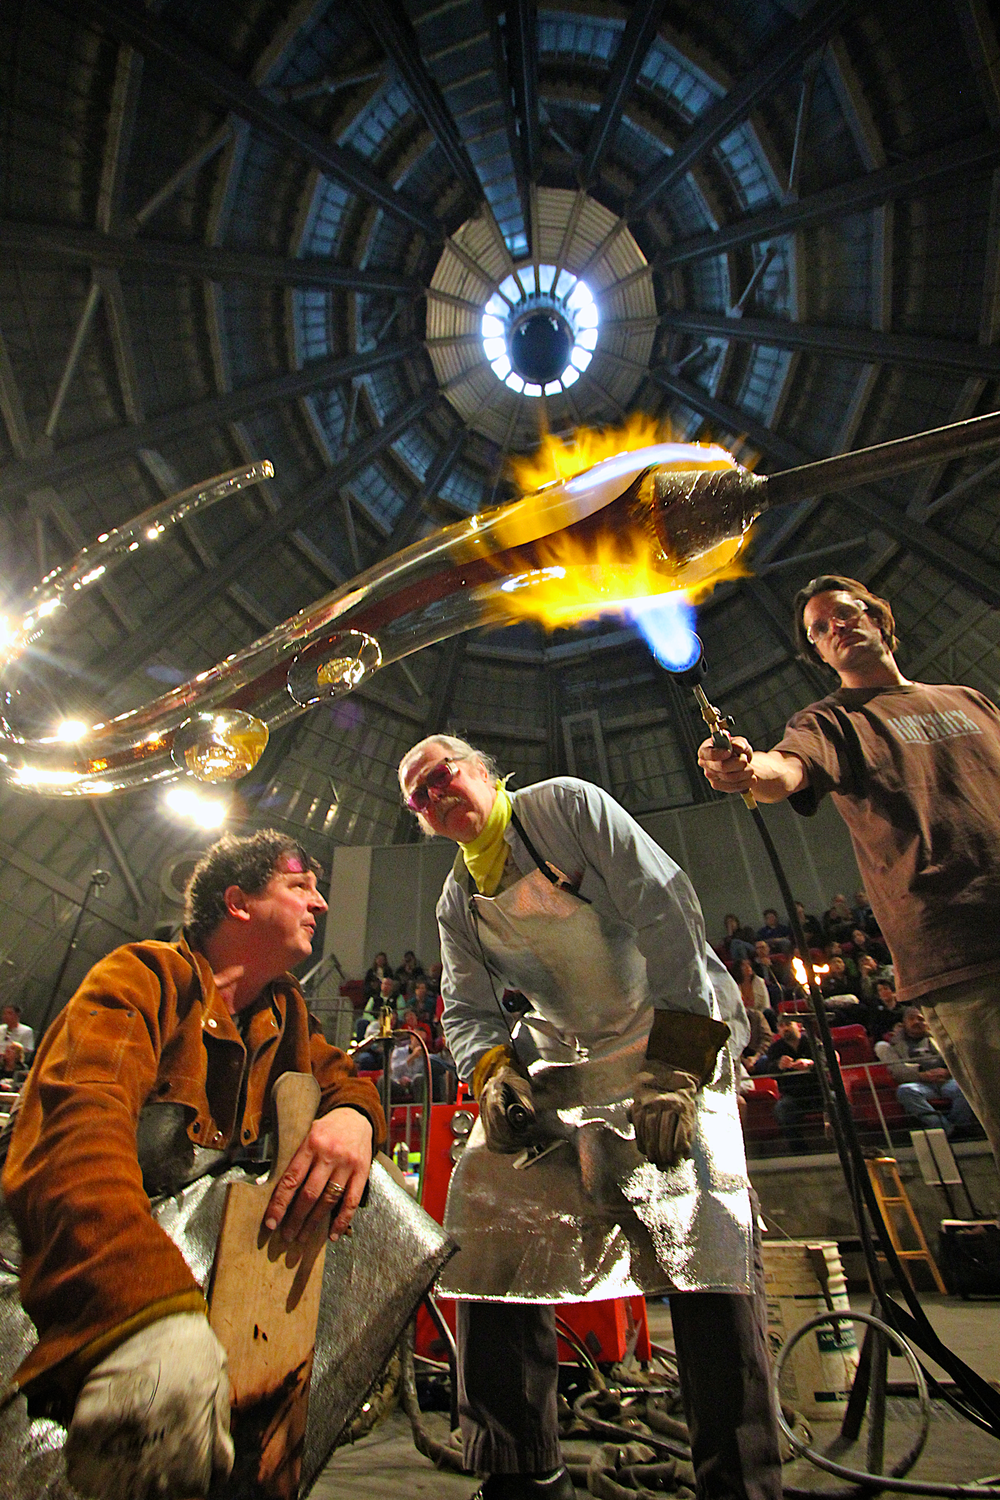 Albert Paley and Martin Blank working in the MOG Hot Shop. Photo by Chuck Lysen.